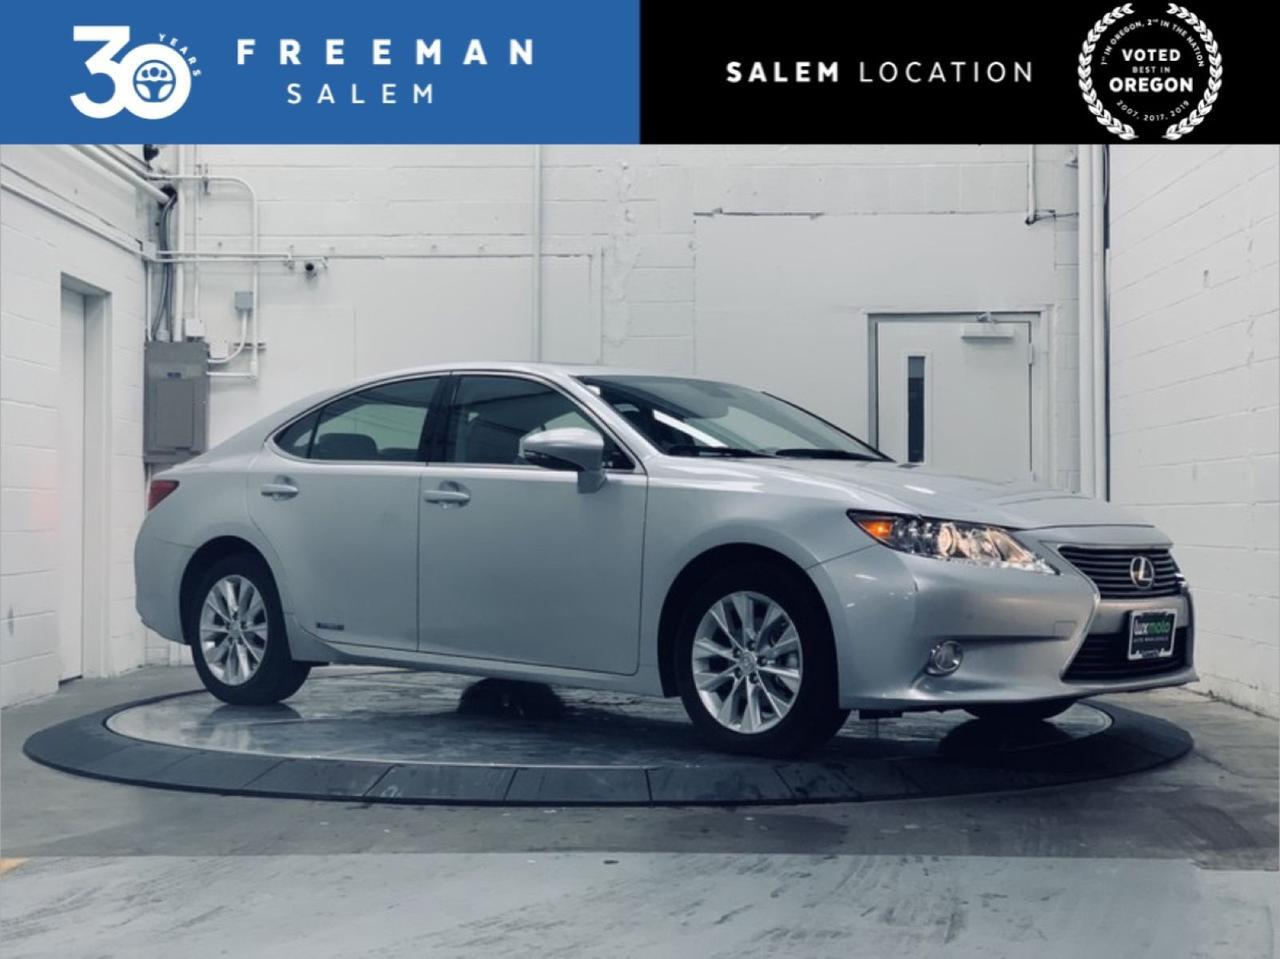 2014 Lexus ES 300h Hybrid Blind Spot Monitor Heated/Ventilated Seats Salem OR